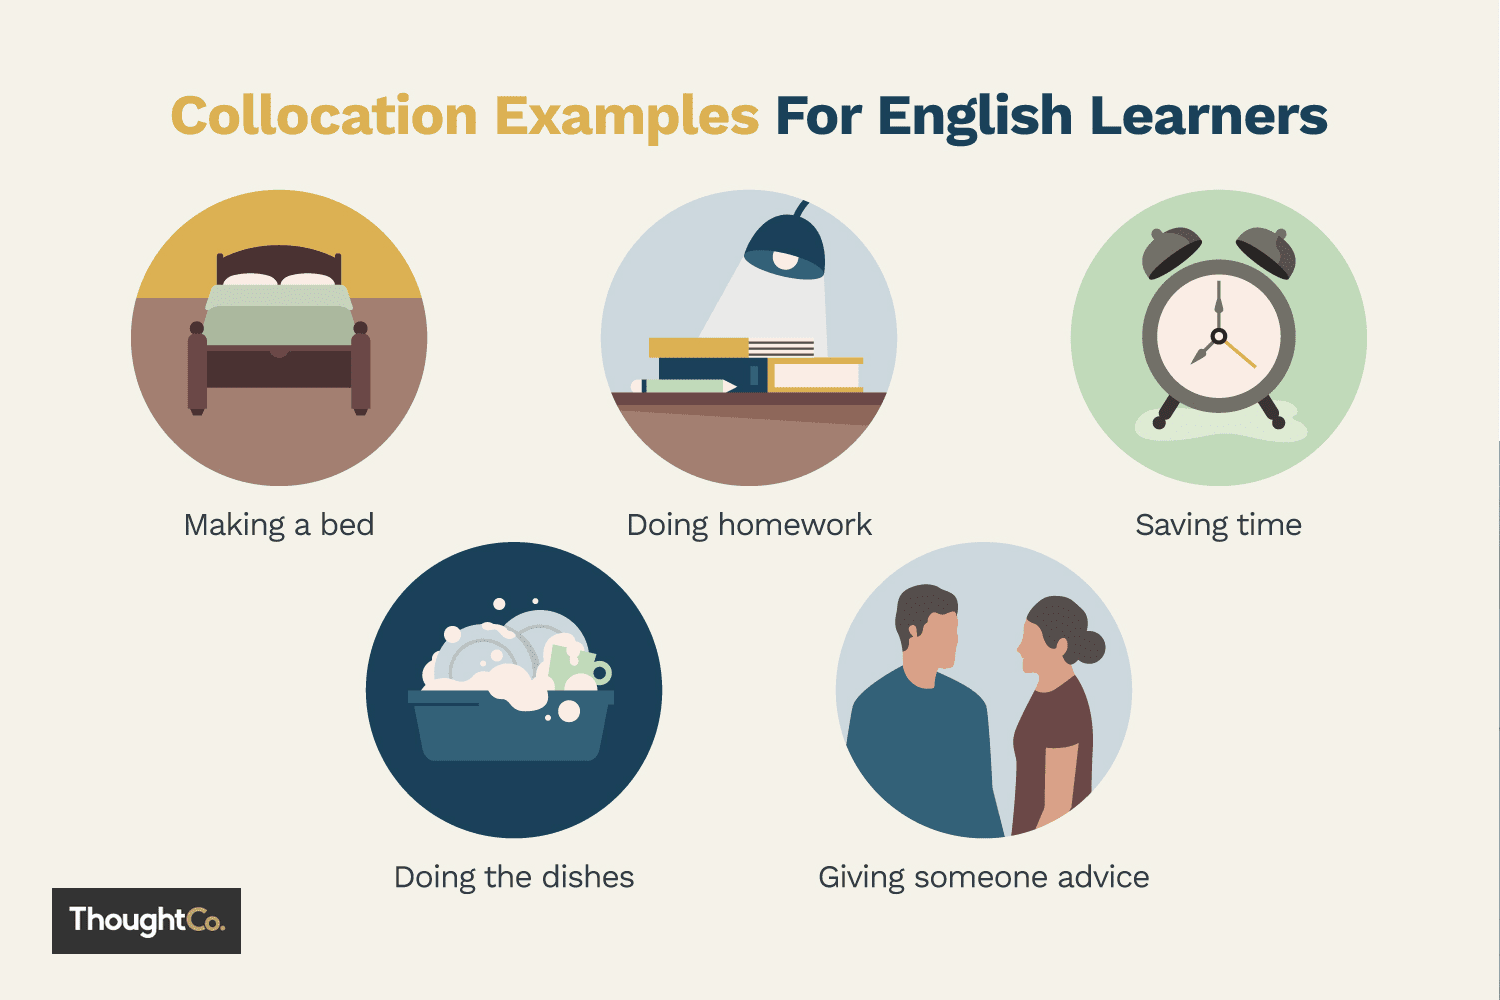 Collocation Examples For English Learners